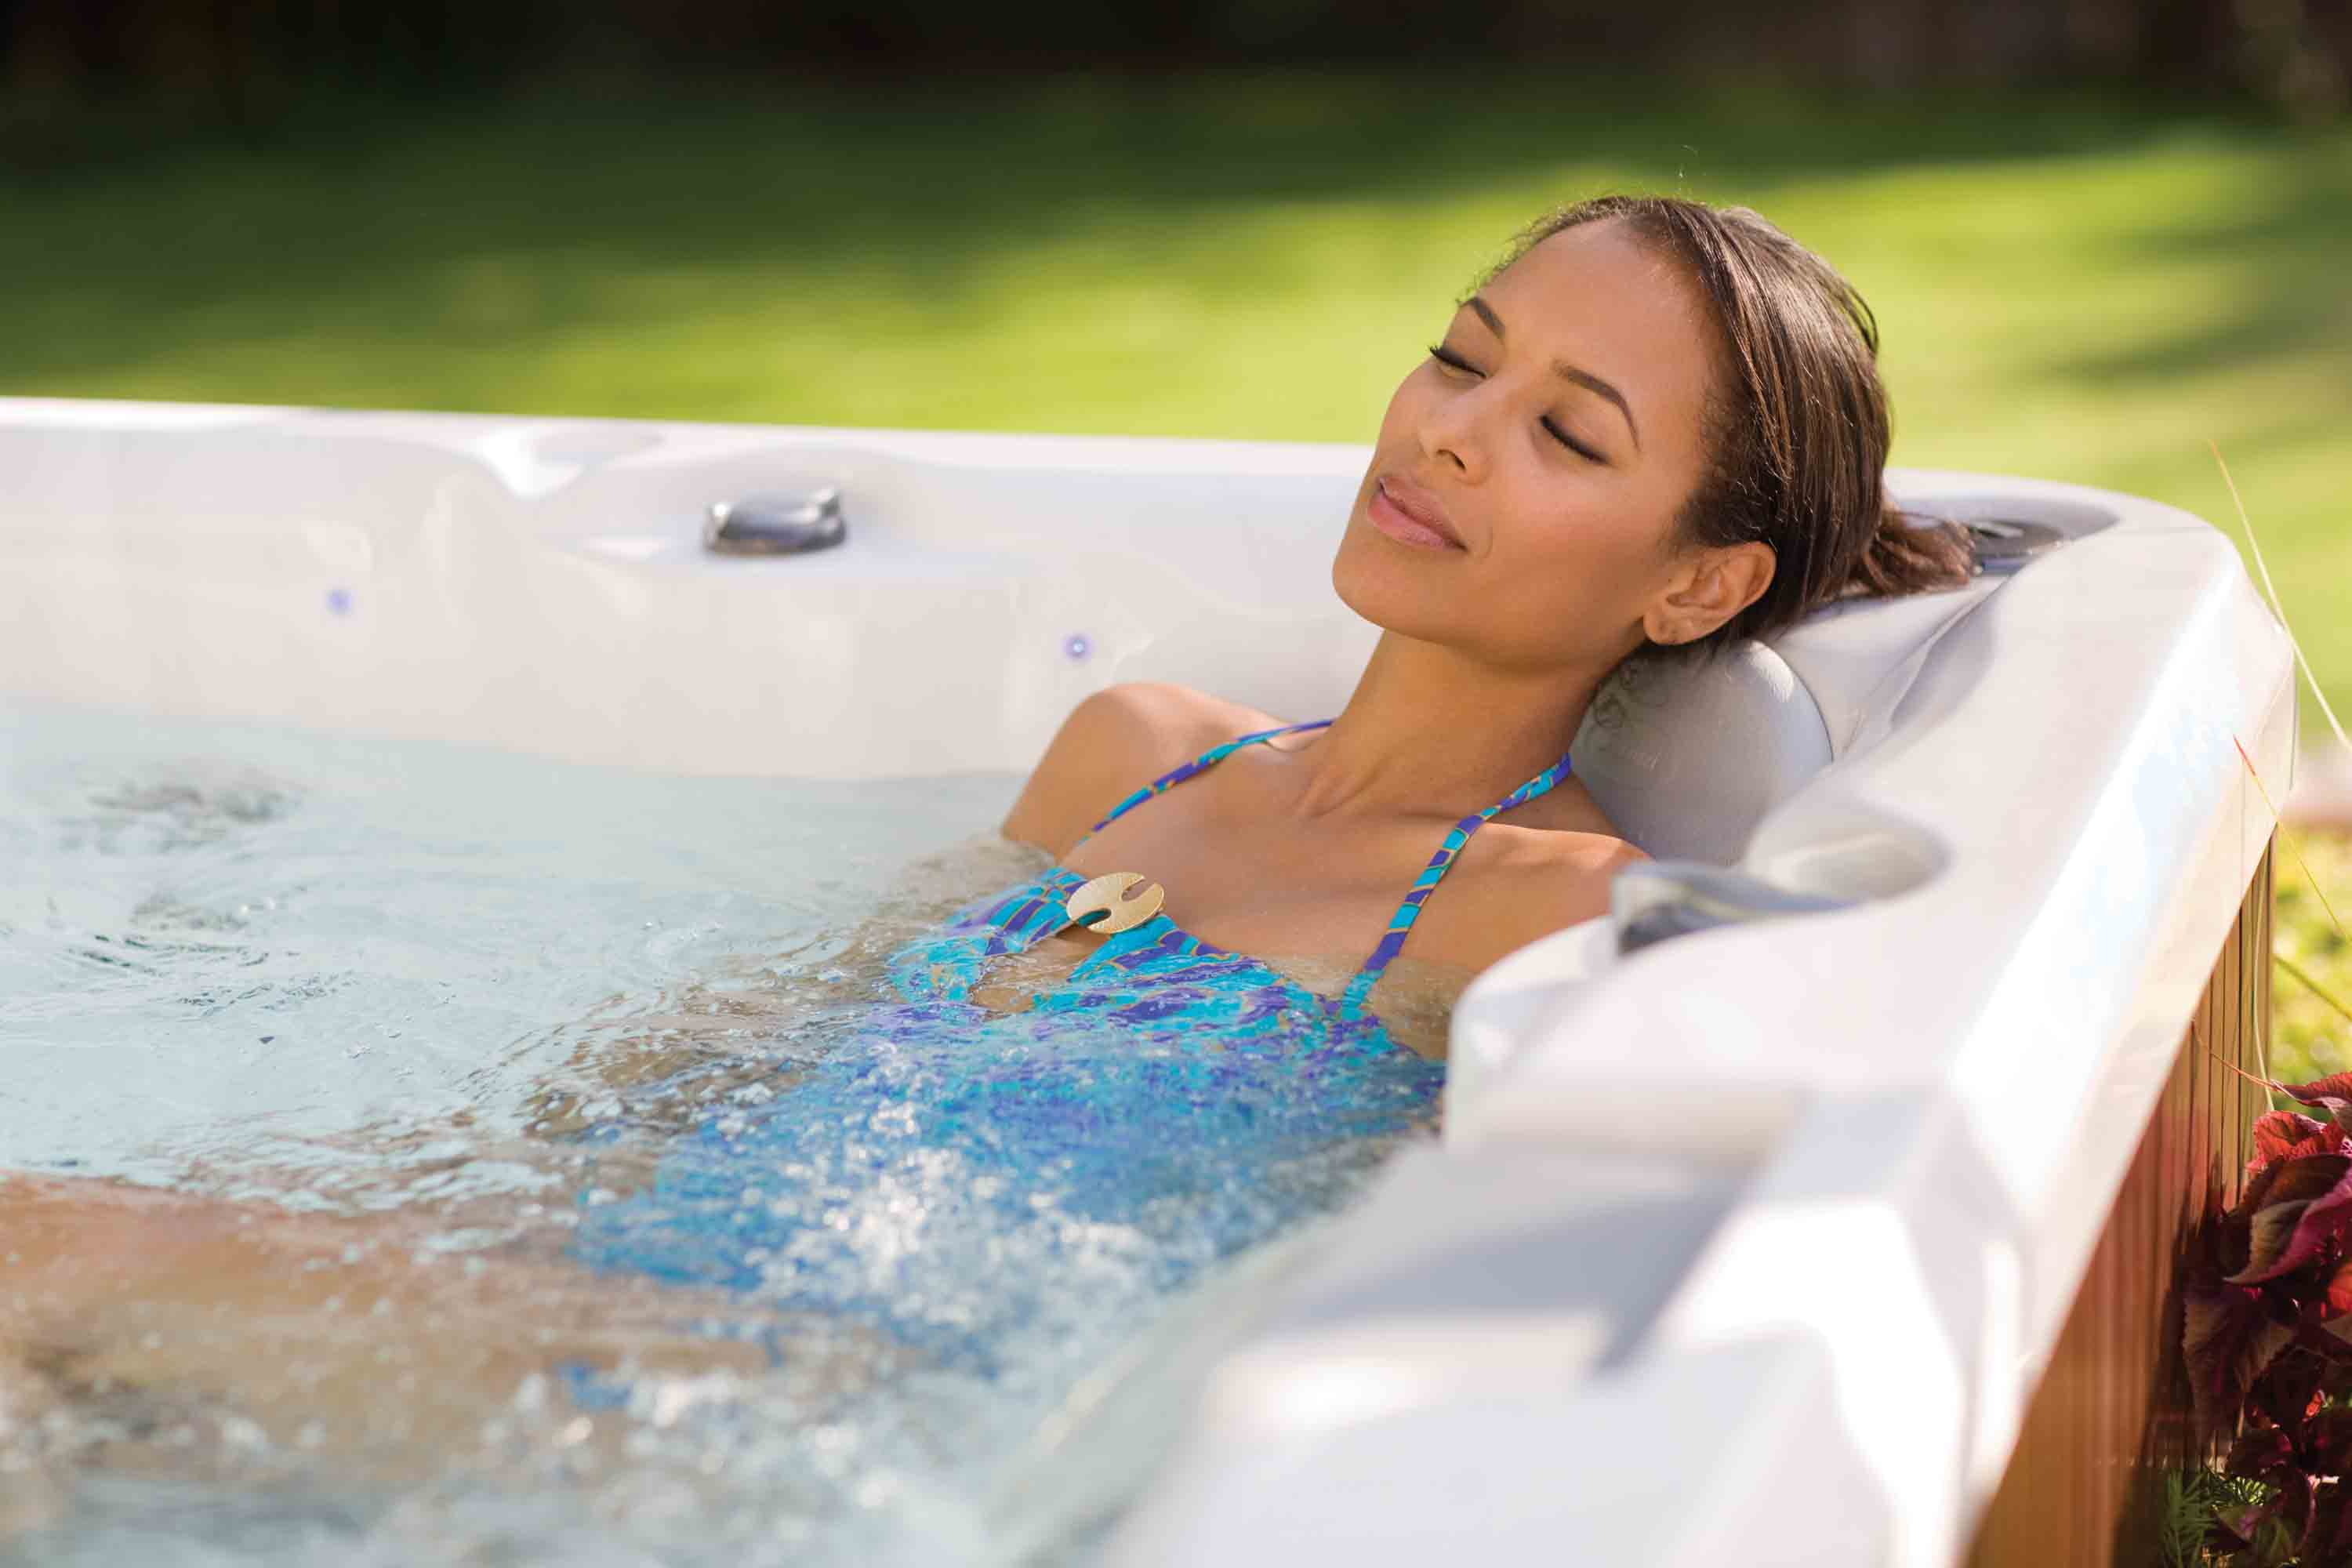 hot tub massage | BlahTherapy - Online Therapy and Counseling Services.